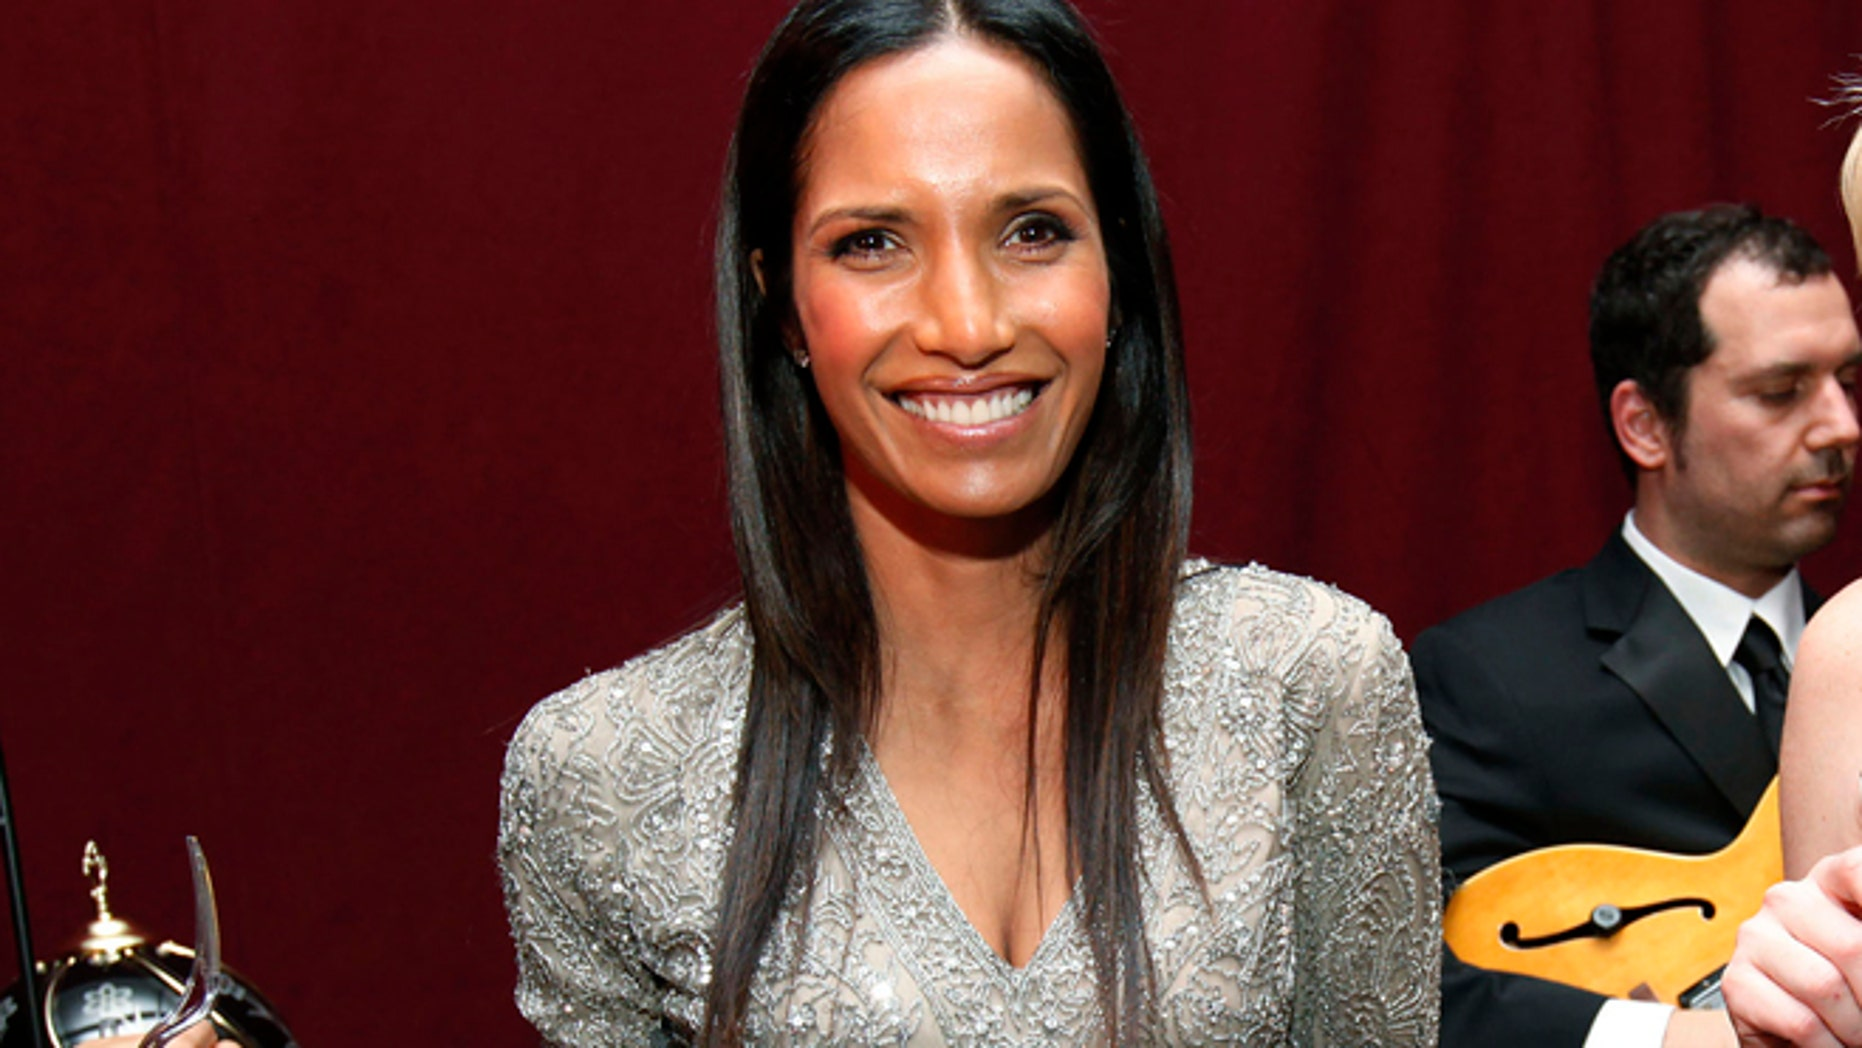 IMAGE DISTRIBUTED FOR STERLING VINEYARDS - Host Padma Lakshmi, left, and blogger Tori Tait attend the Sterling Ultimate Host finale event at Location05 on December 5, 2012 in New York City. (Amy Sussman/AP Images for Sterling Vineyards)